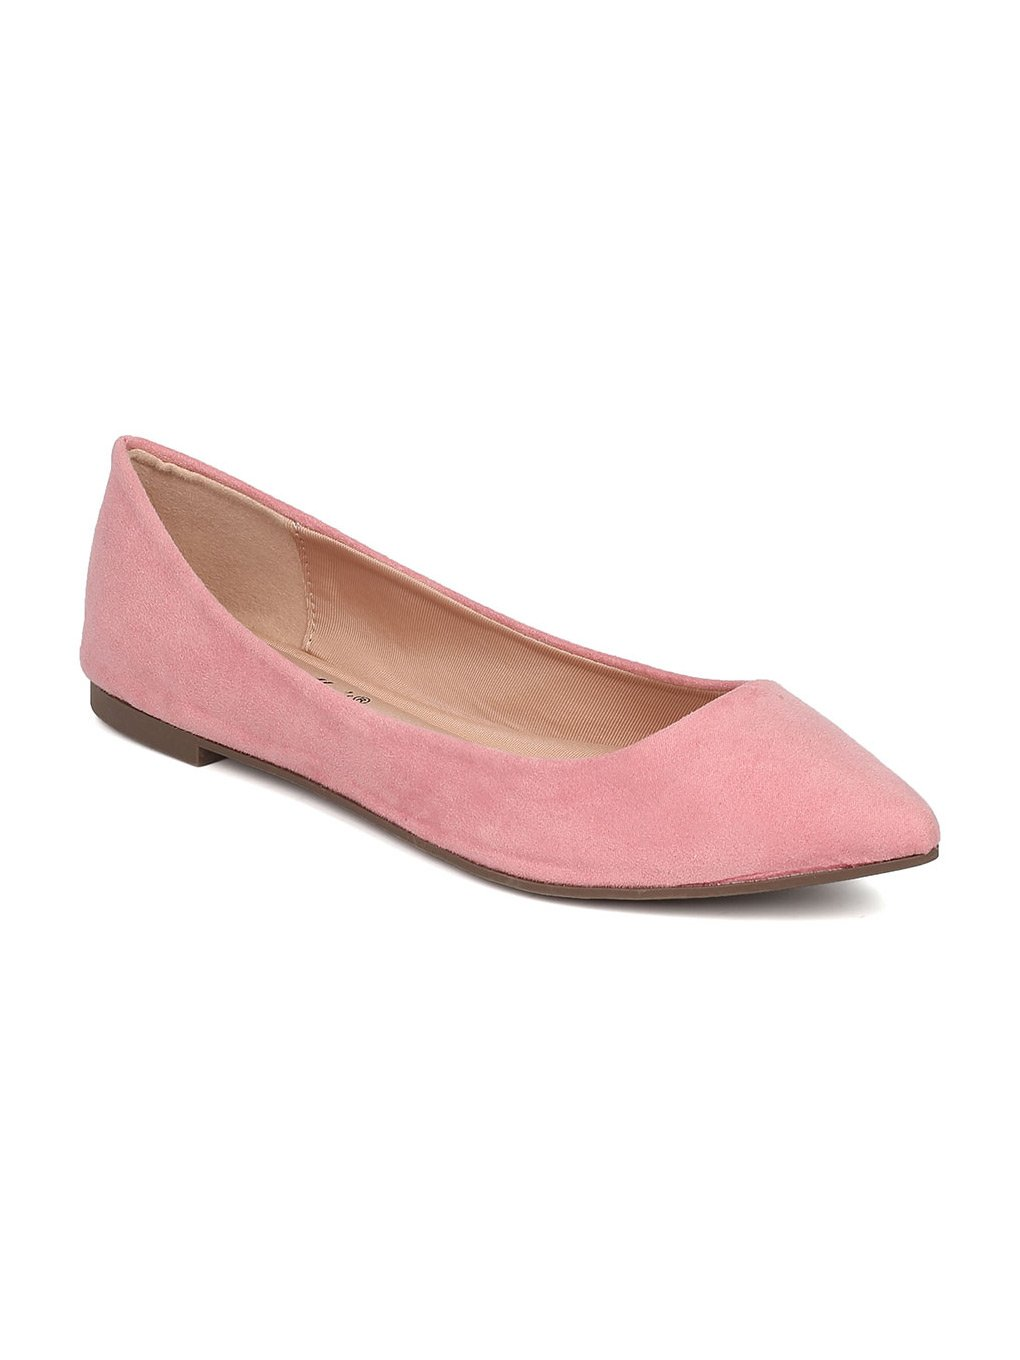 Breckelle's Women Faux Suede Pointy Toe Ballet Flat GH13 B06XYJH8MD 8.5 M US|Pink